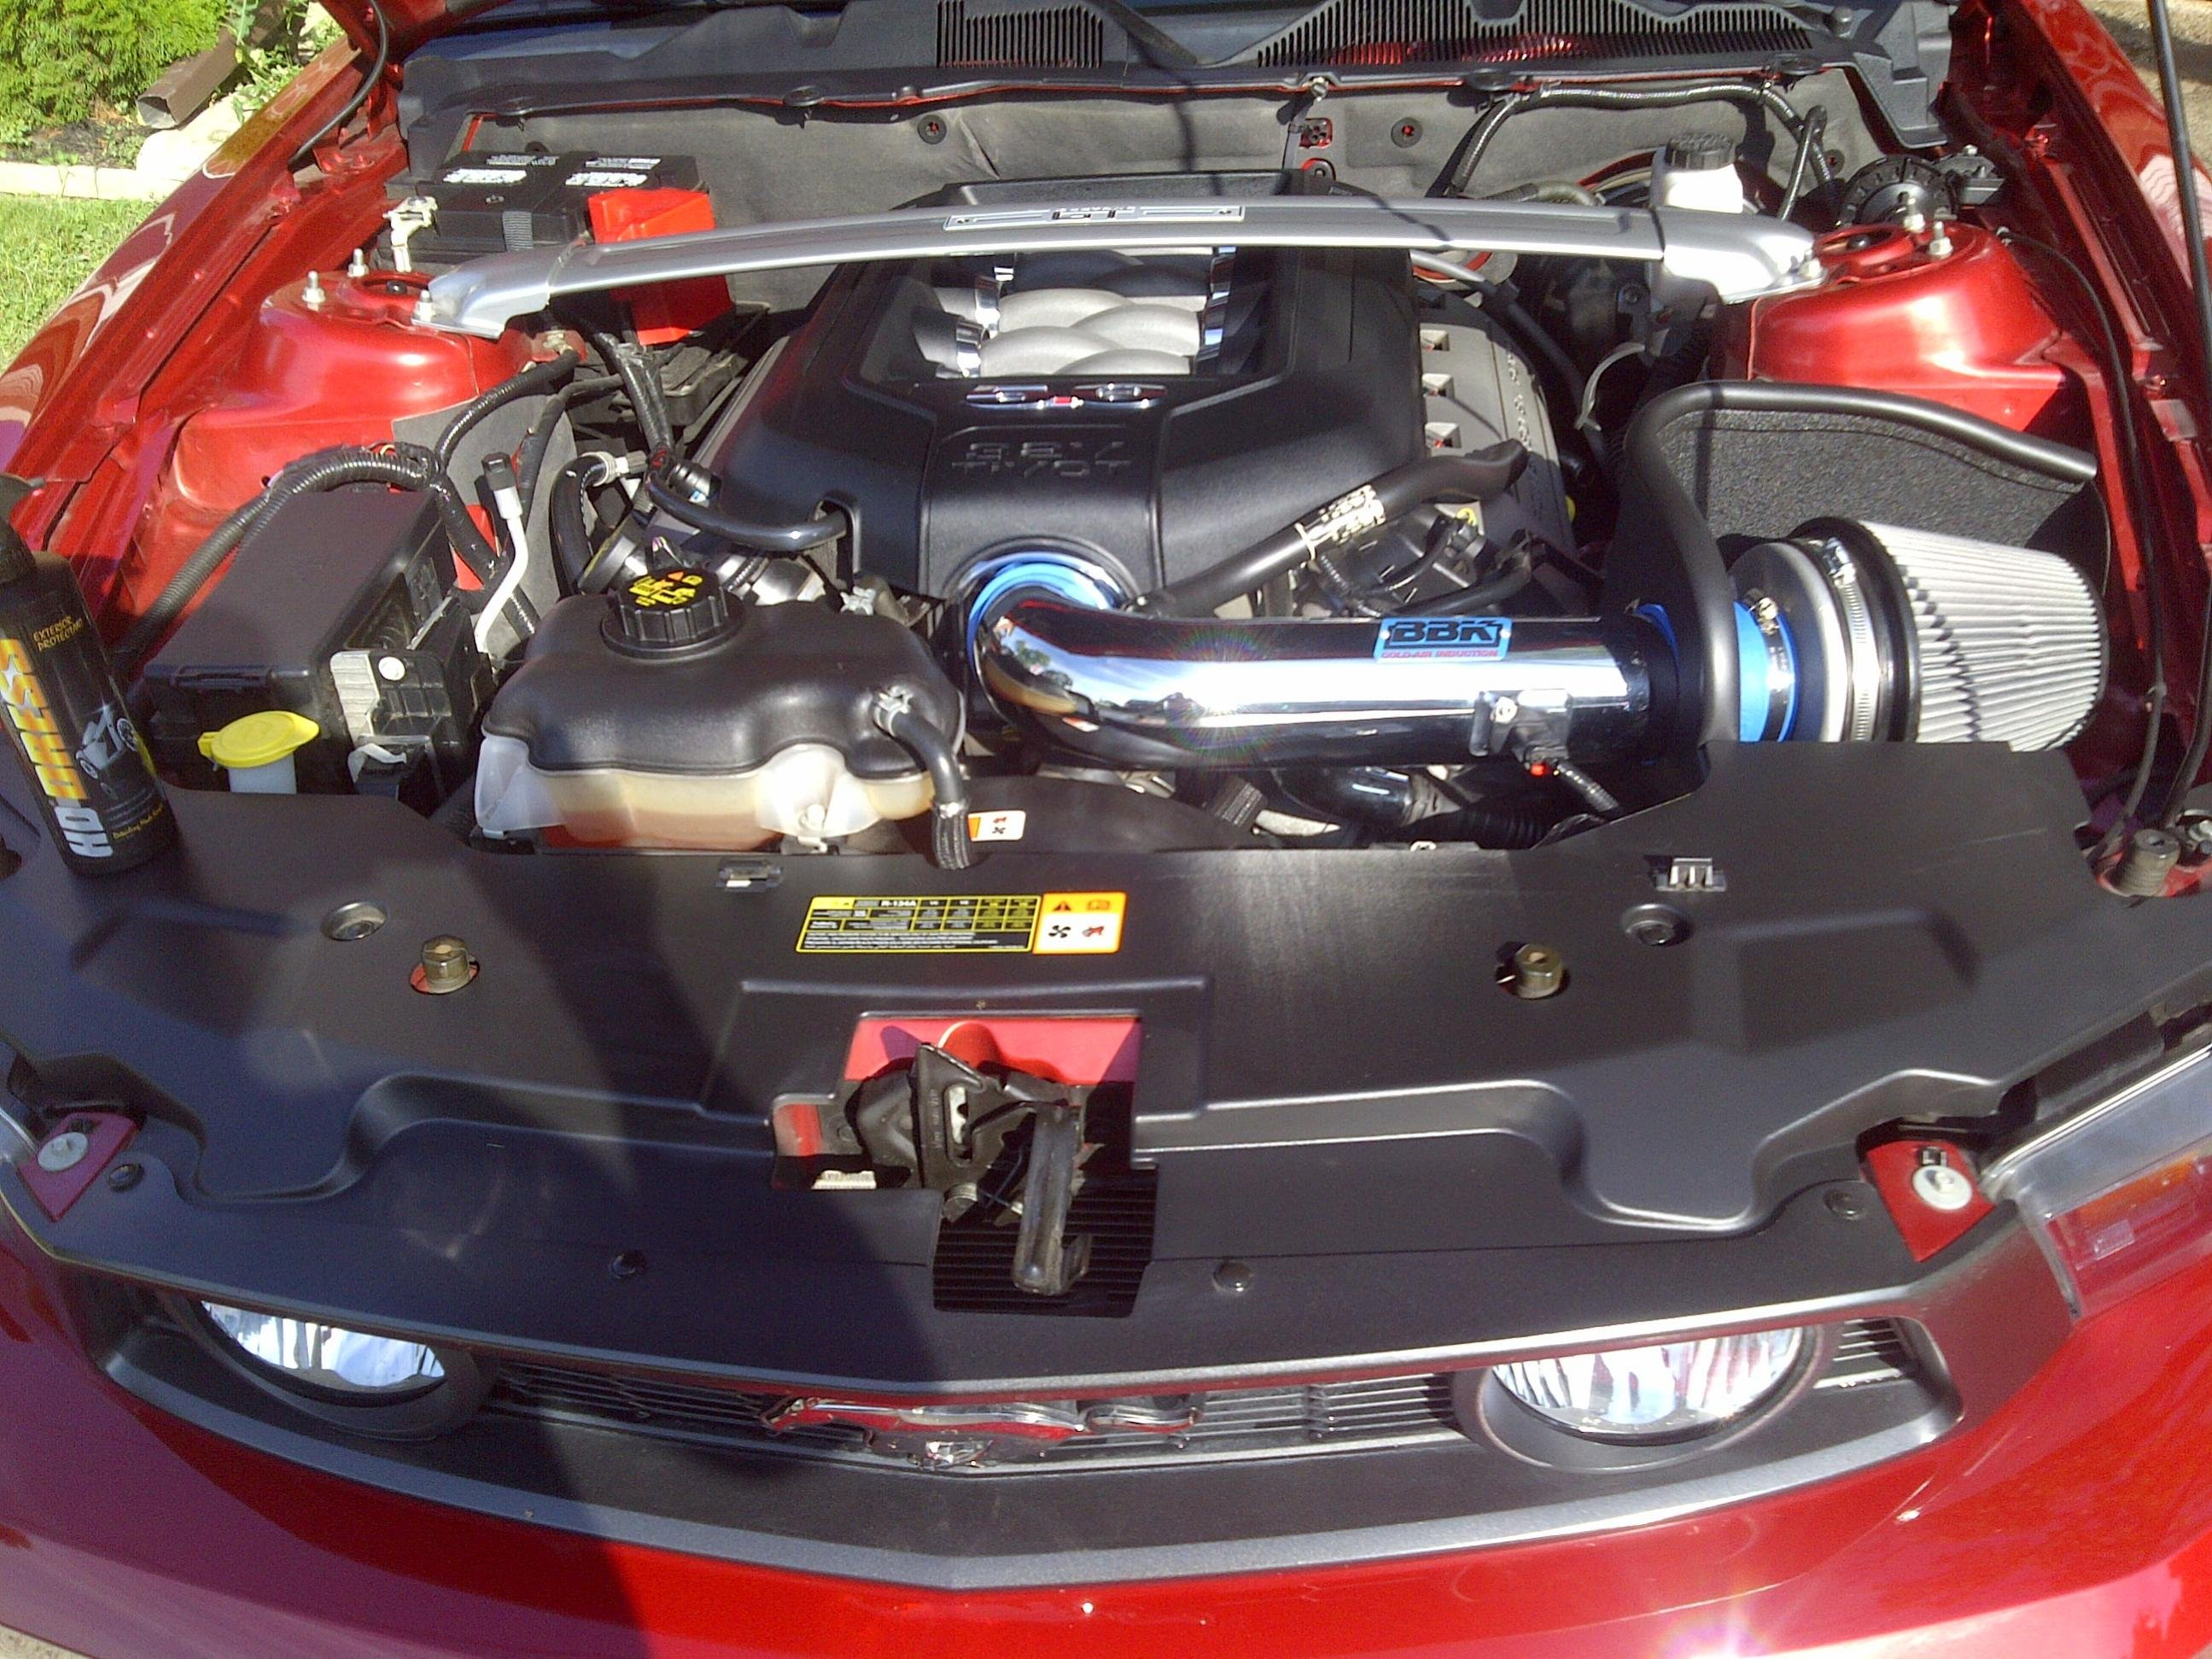 91 Mustang Gt >> Battery what kind - Ford Mustang Forum